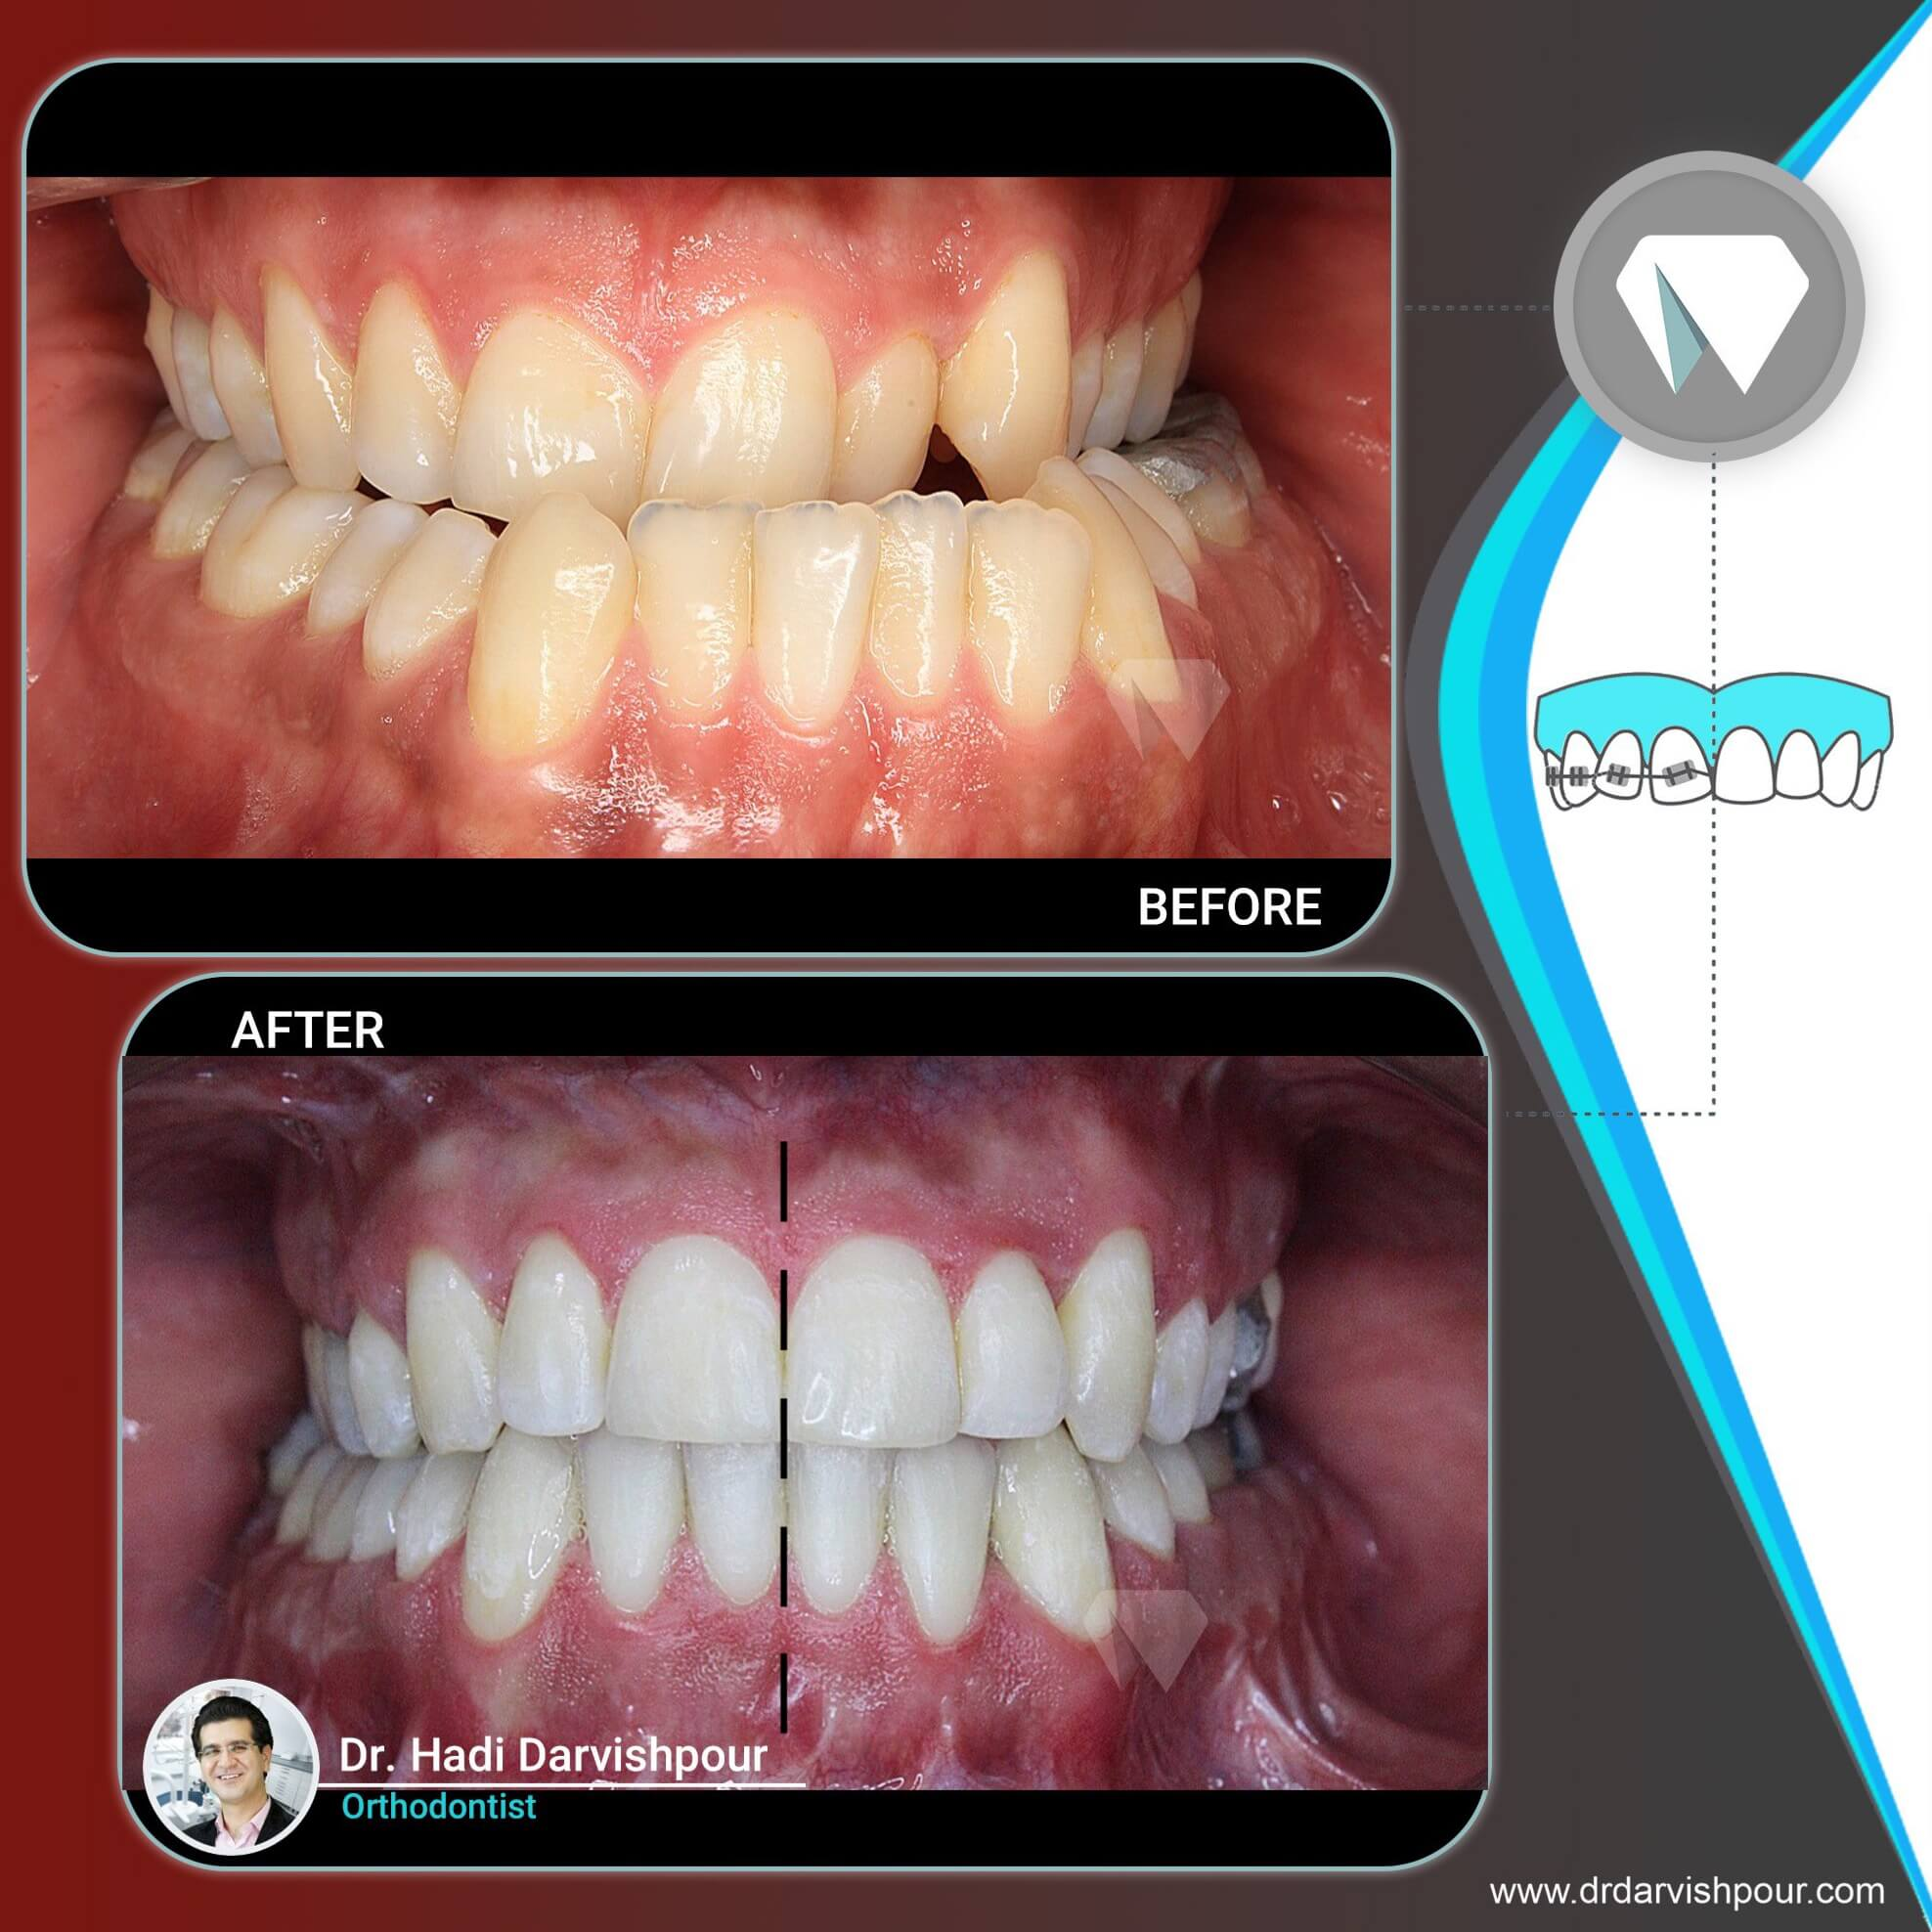 1775orthodontics-before-after-photo